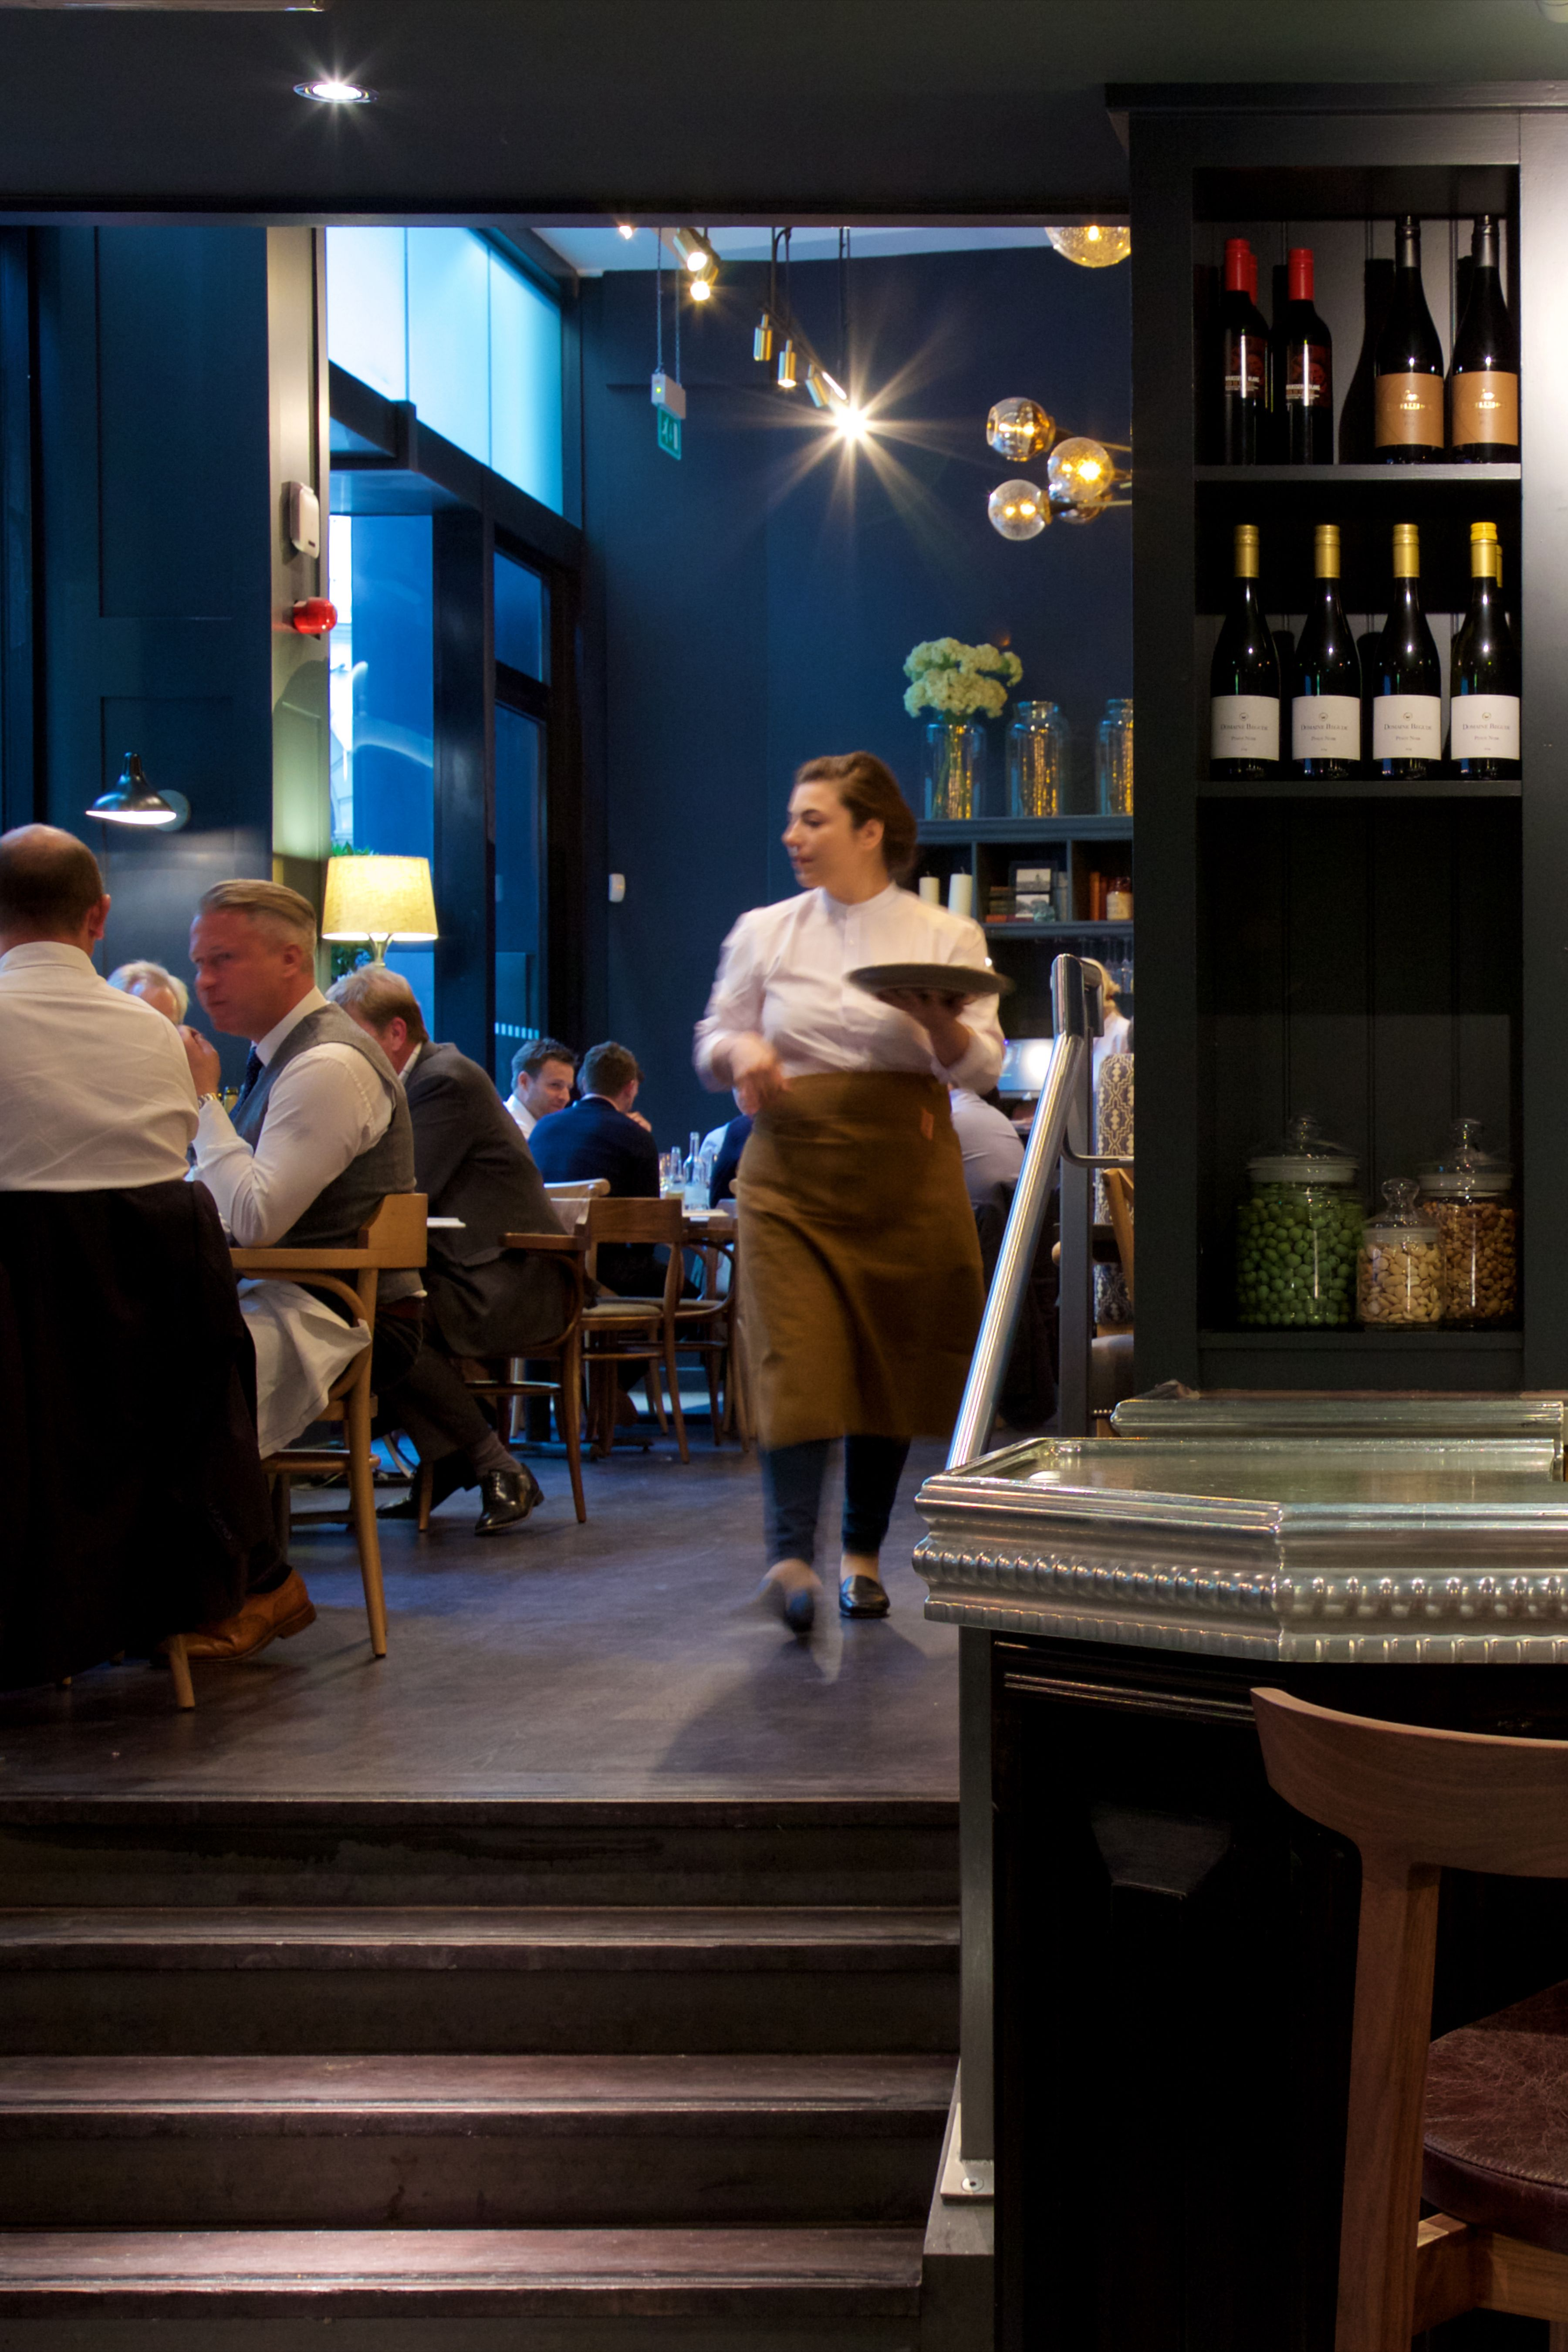 Take a break from the city and have a drink at our beautiful bar.